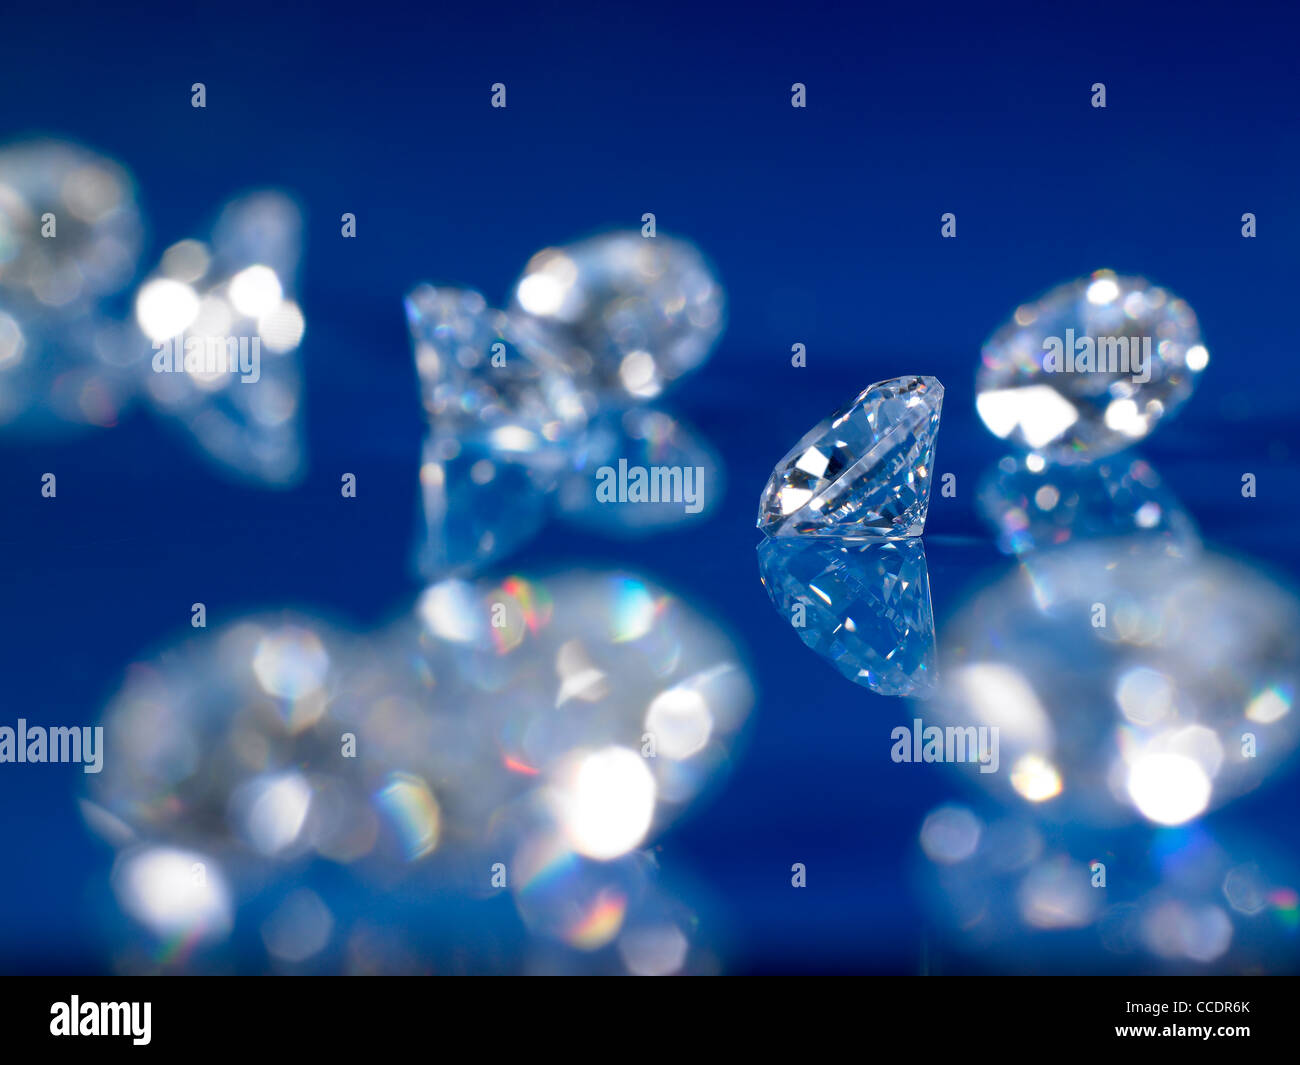 a group of diamonds on a blue reflective background - Stock Image